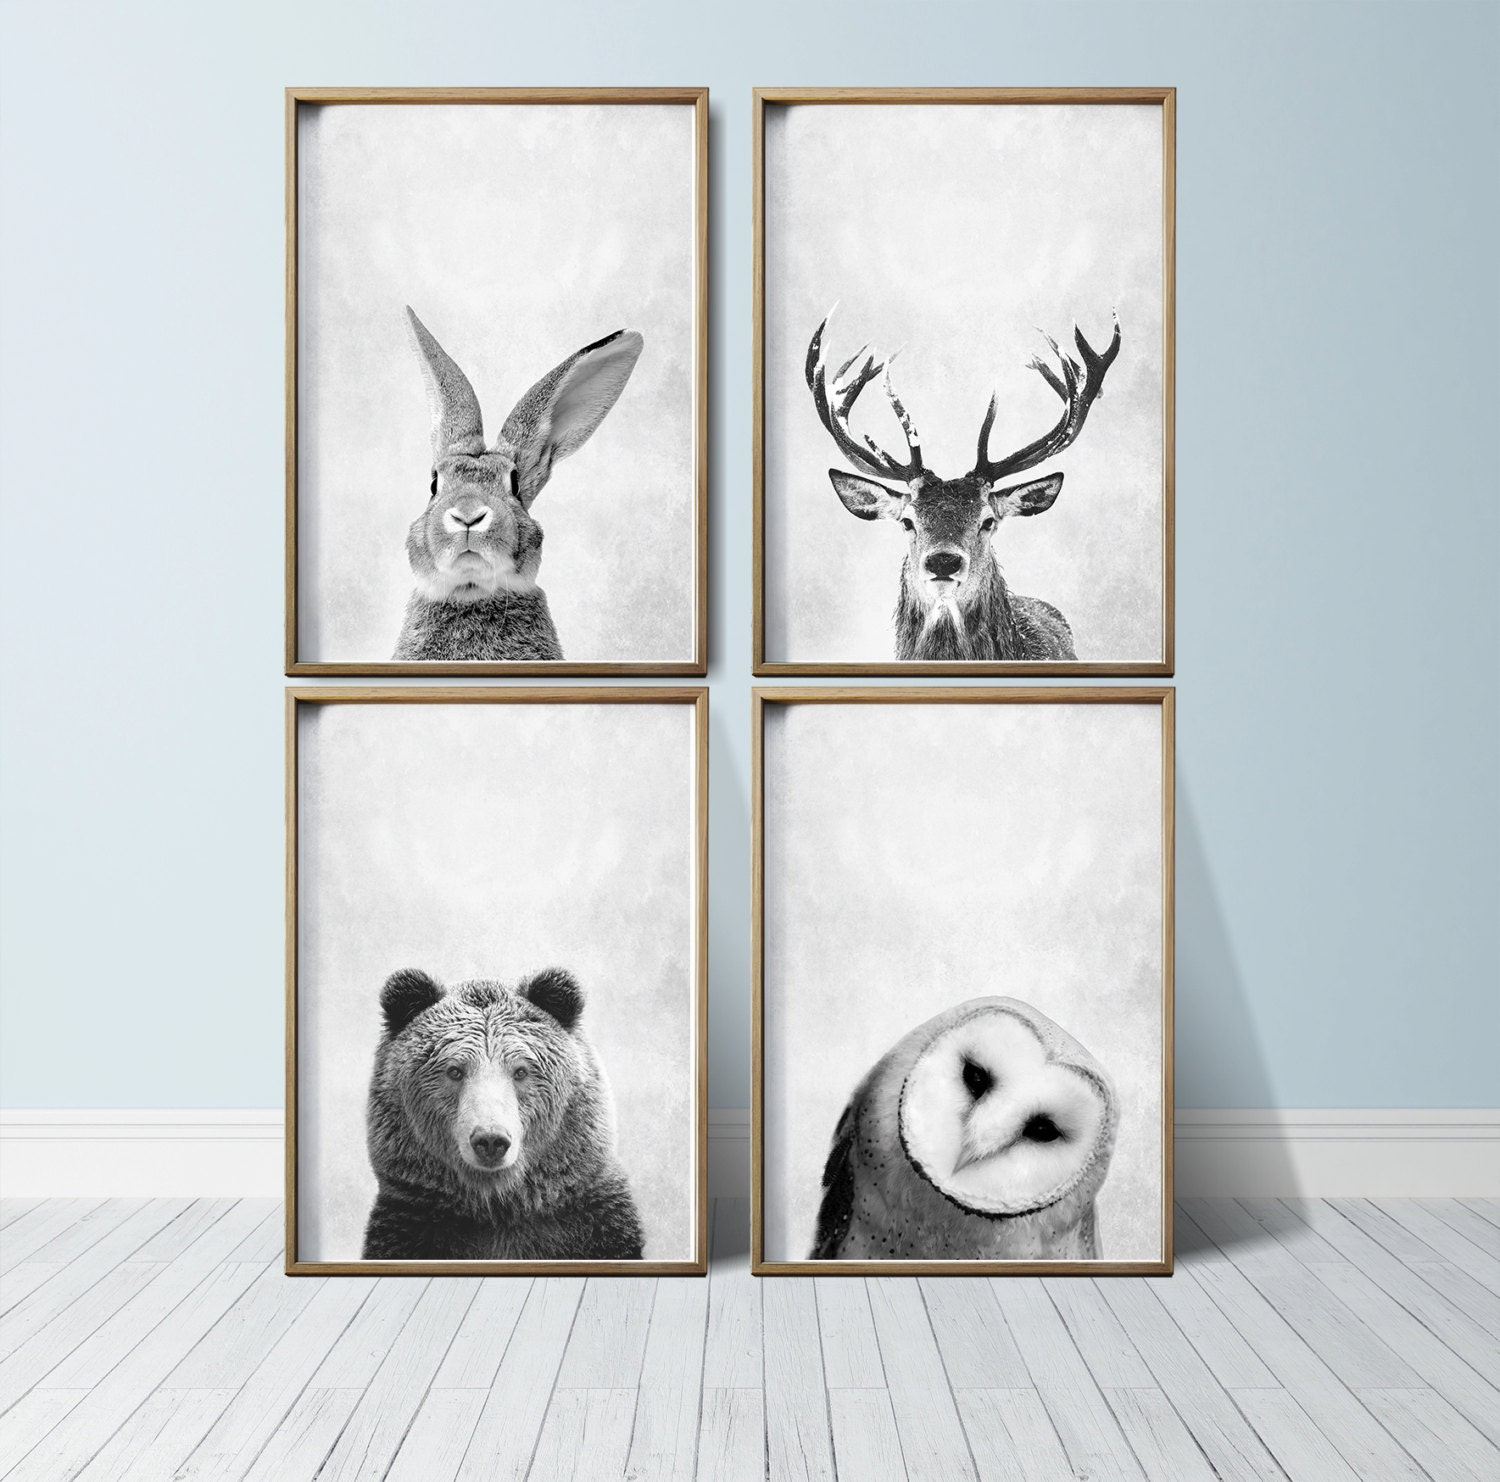 Woodland Nursery Wall Decor : Nursery wall art animal print woodland decor